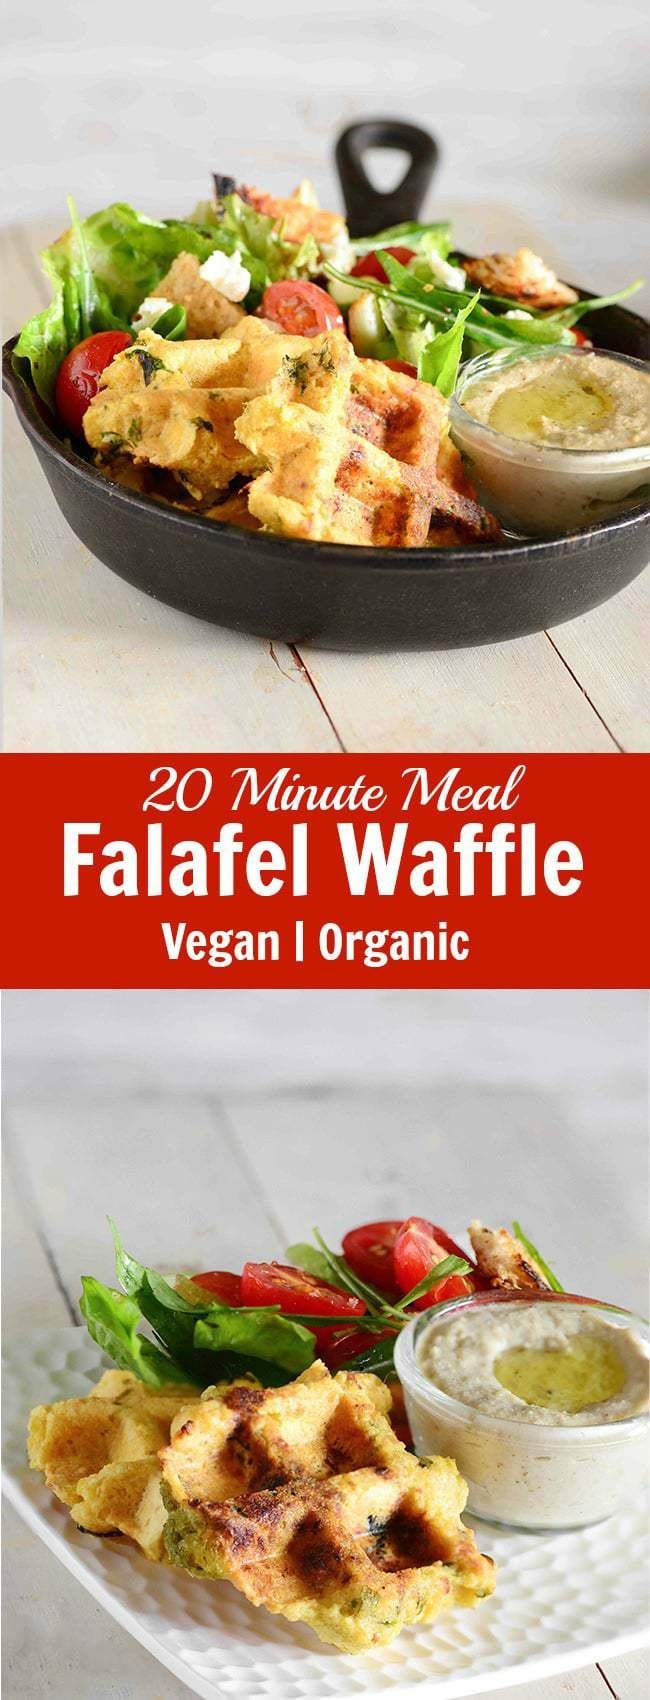 Falafel and waffle, two of my favorite words in the same breath in this falafel waffle recipe, and that makes it one of my absolute favorite way to eat falafels. And this falafel waffle recipe is an adaptation taking inspiration from this popular middle eastern food falafels. Falafel are a popular Middle Eastern/Mediterranean street food. It is often served with hummus and Tahini sauce. The taste of the falafel remains one of my favorite even till today. The other day when I was…